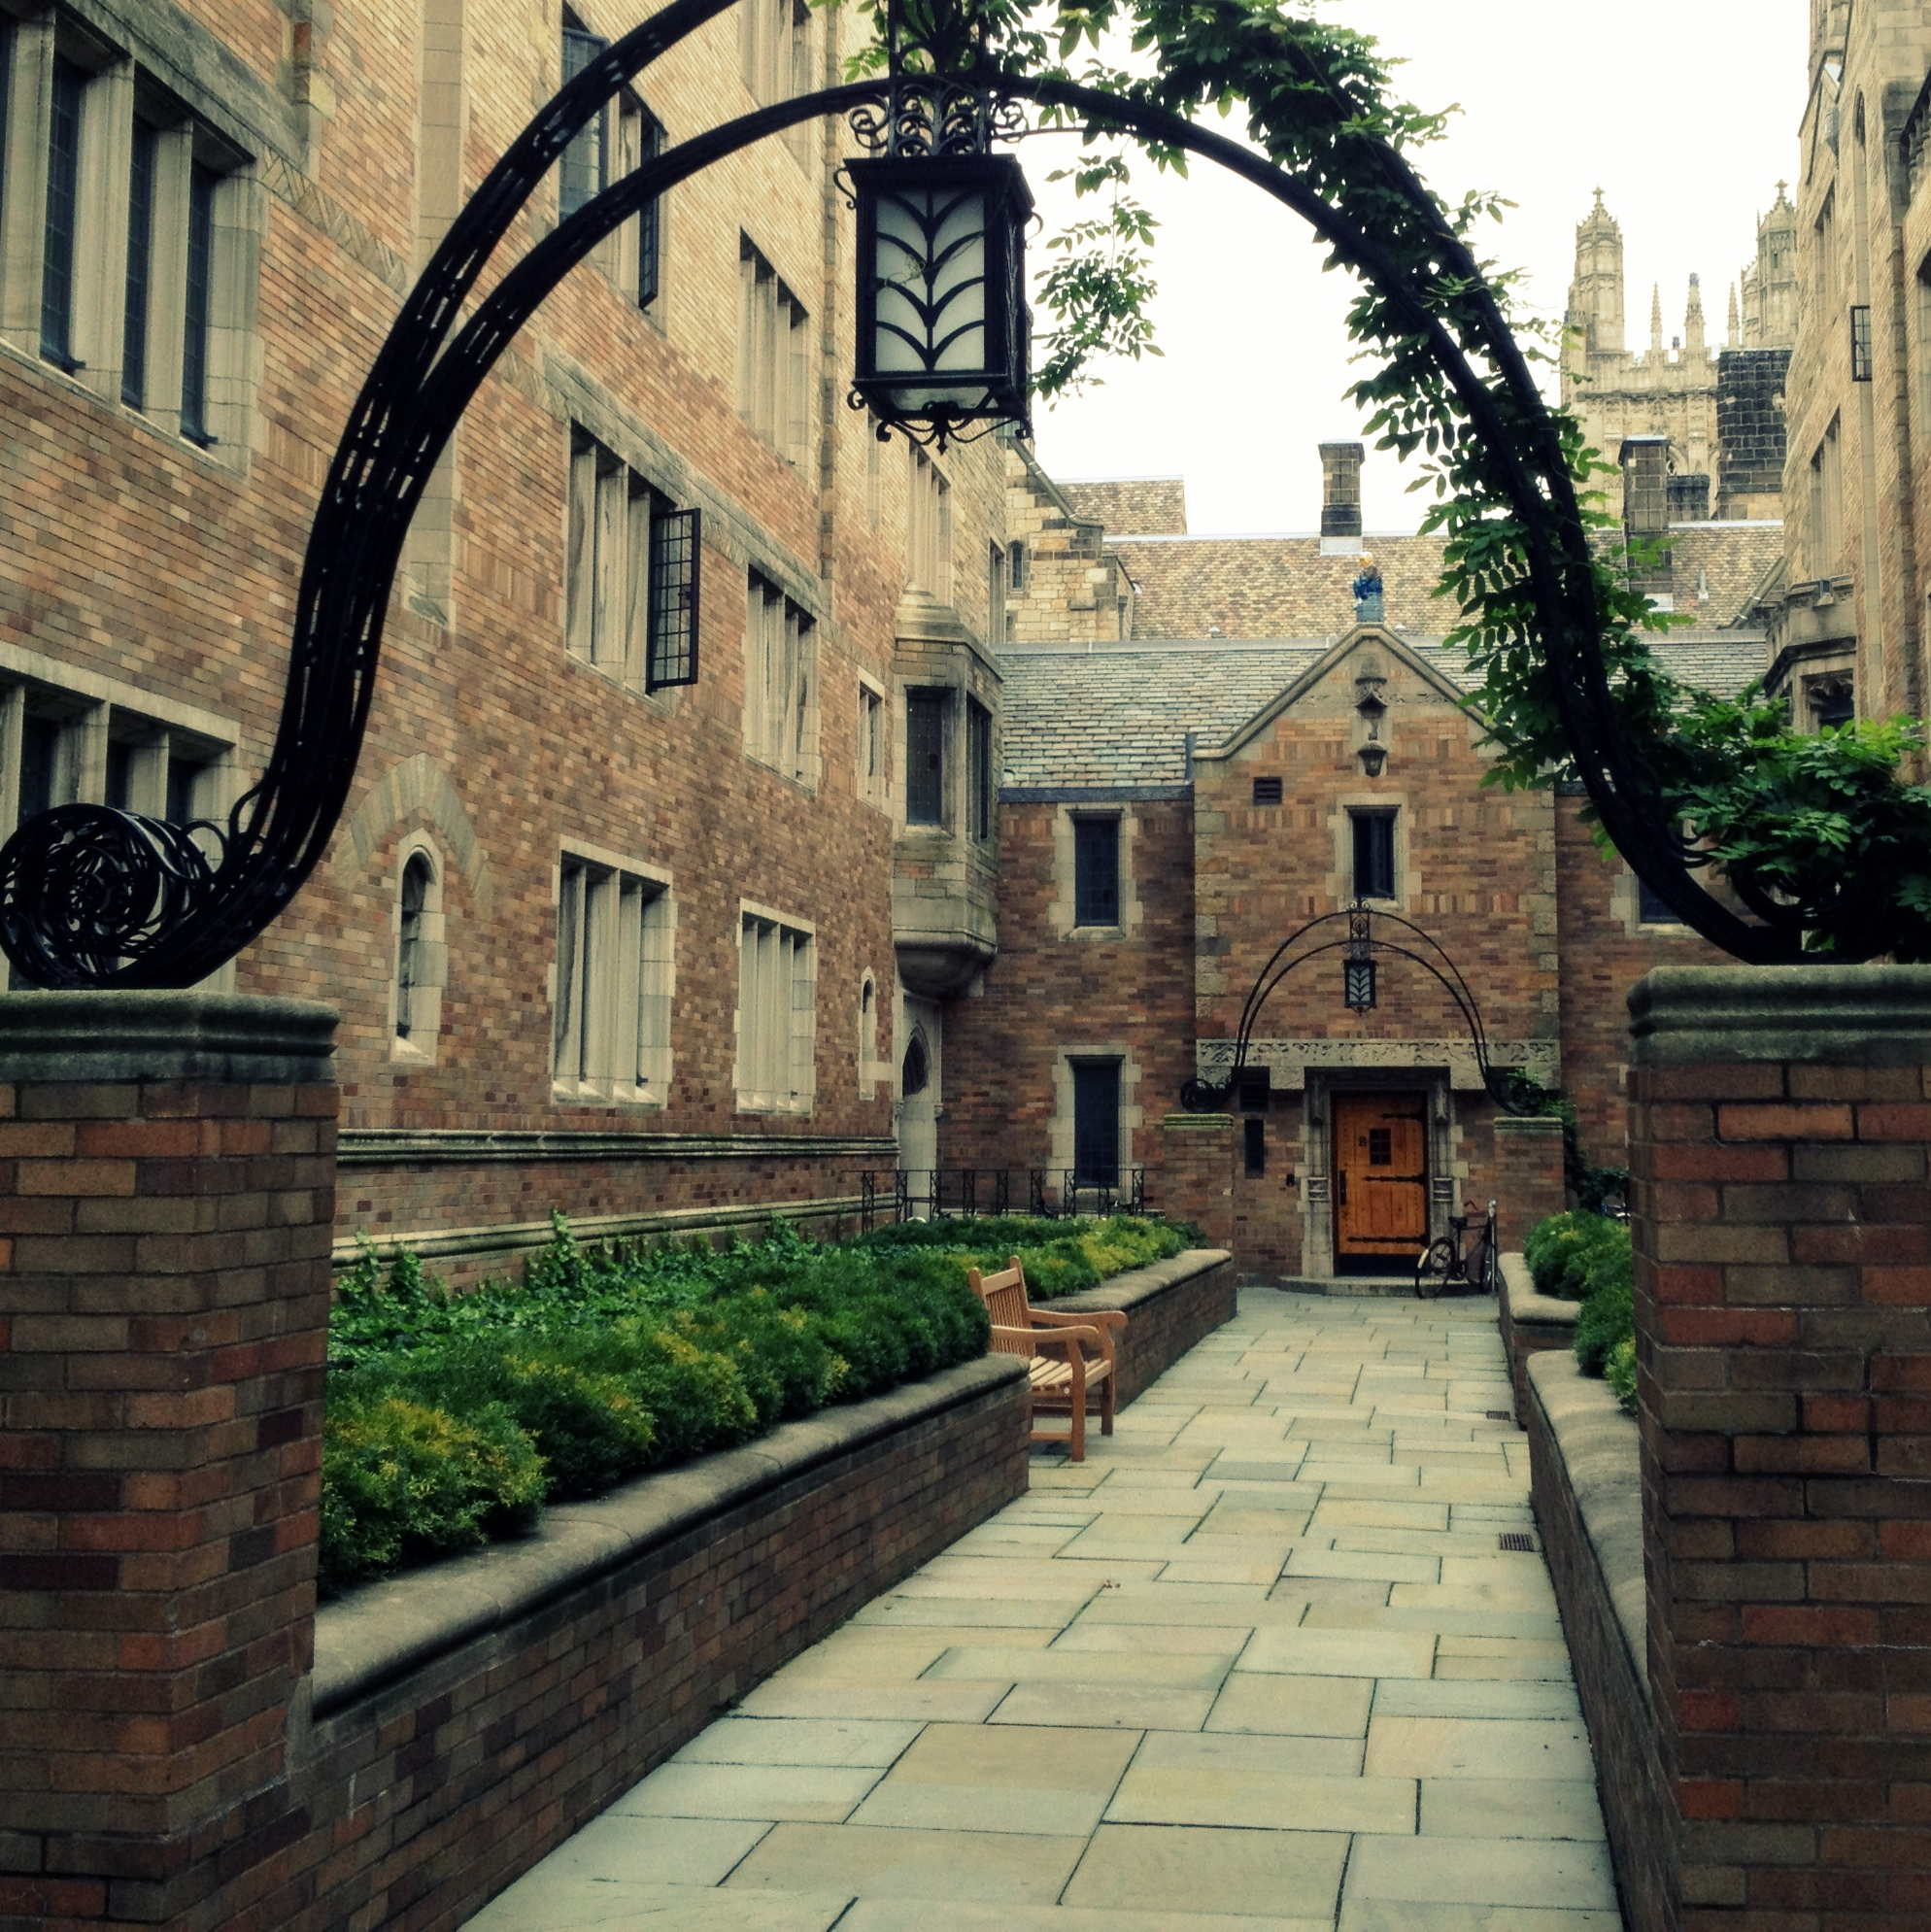 Trumbull College at Yale - Source: Akhil Sud, SM '16